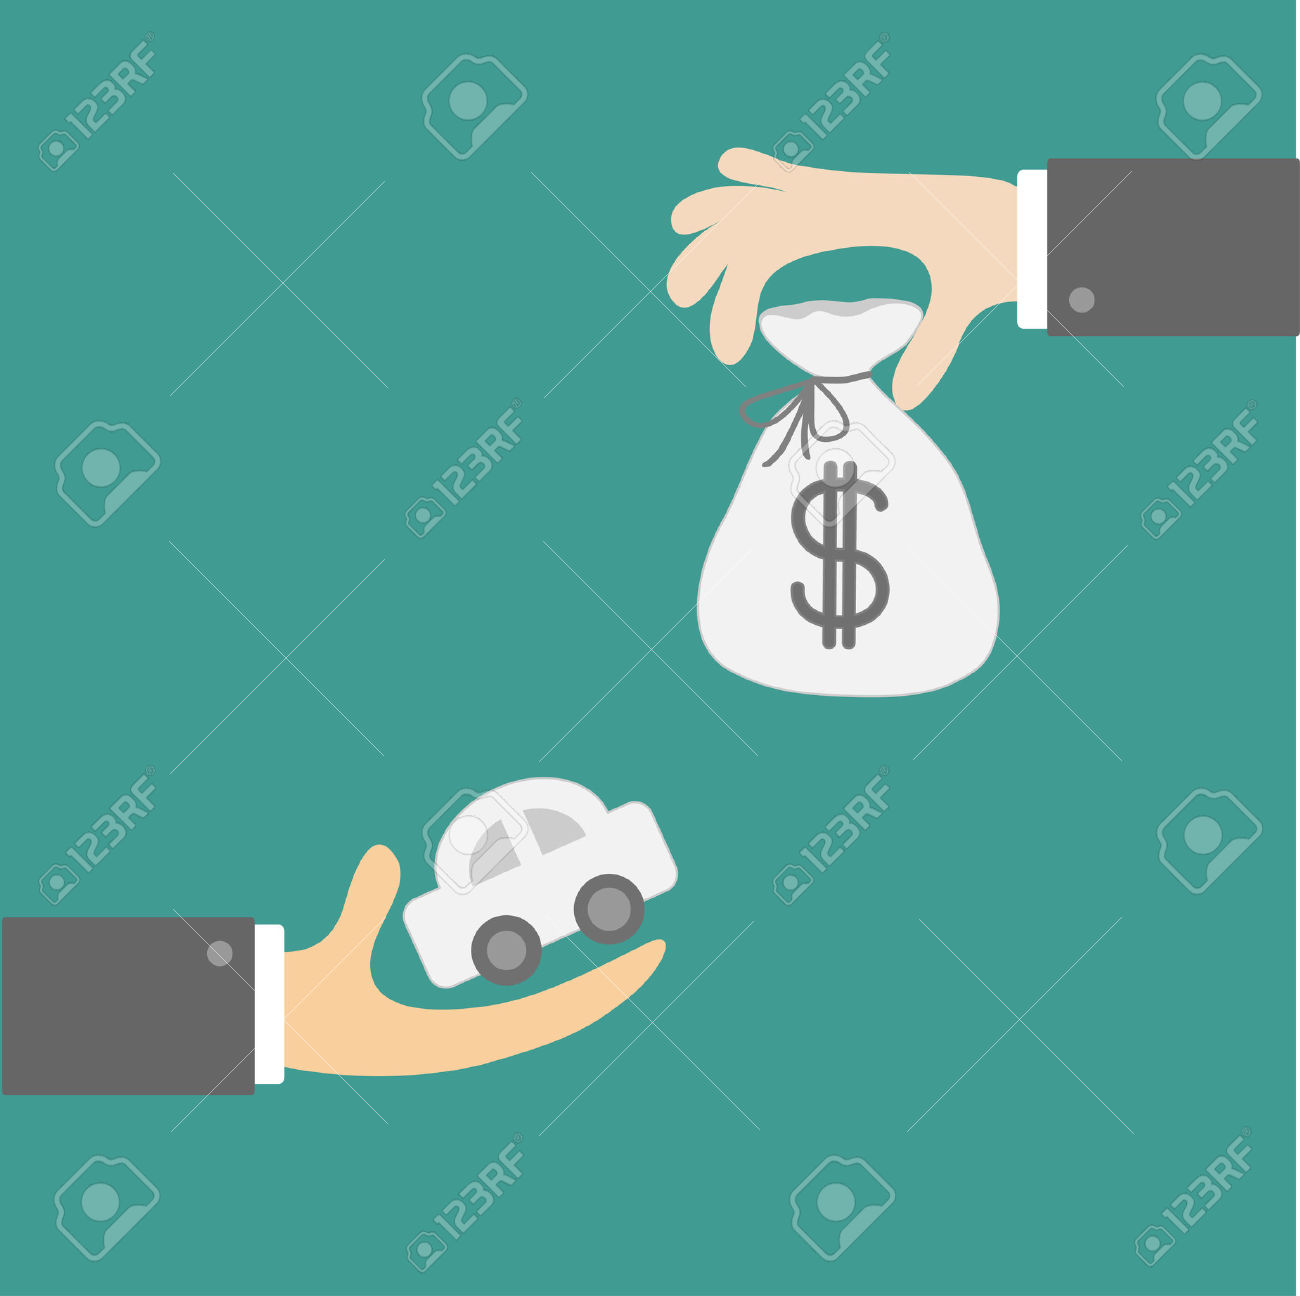 Hands With Car And Money Bag. Exchanging Concept. Flat Design.